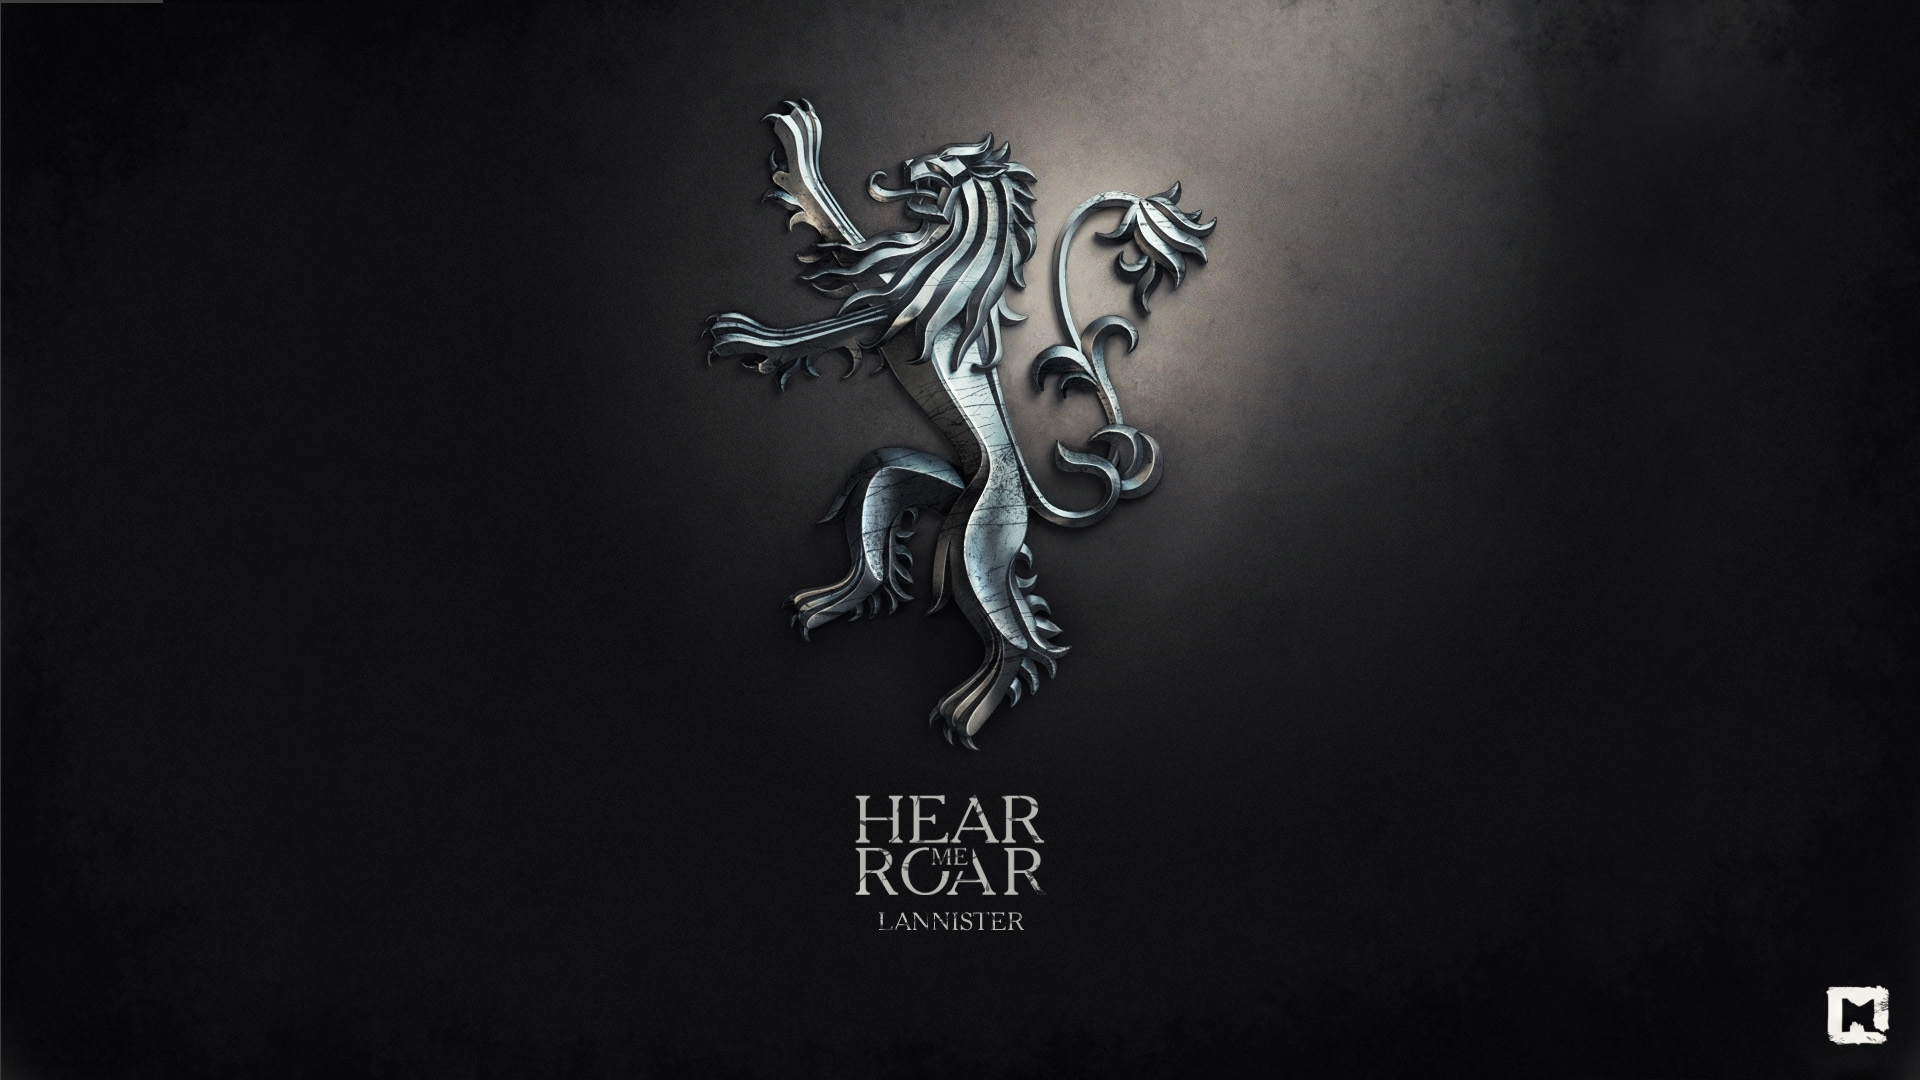 hear me roar lannister game of thrones background - hd wallpapers